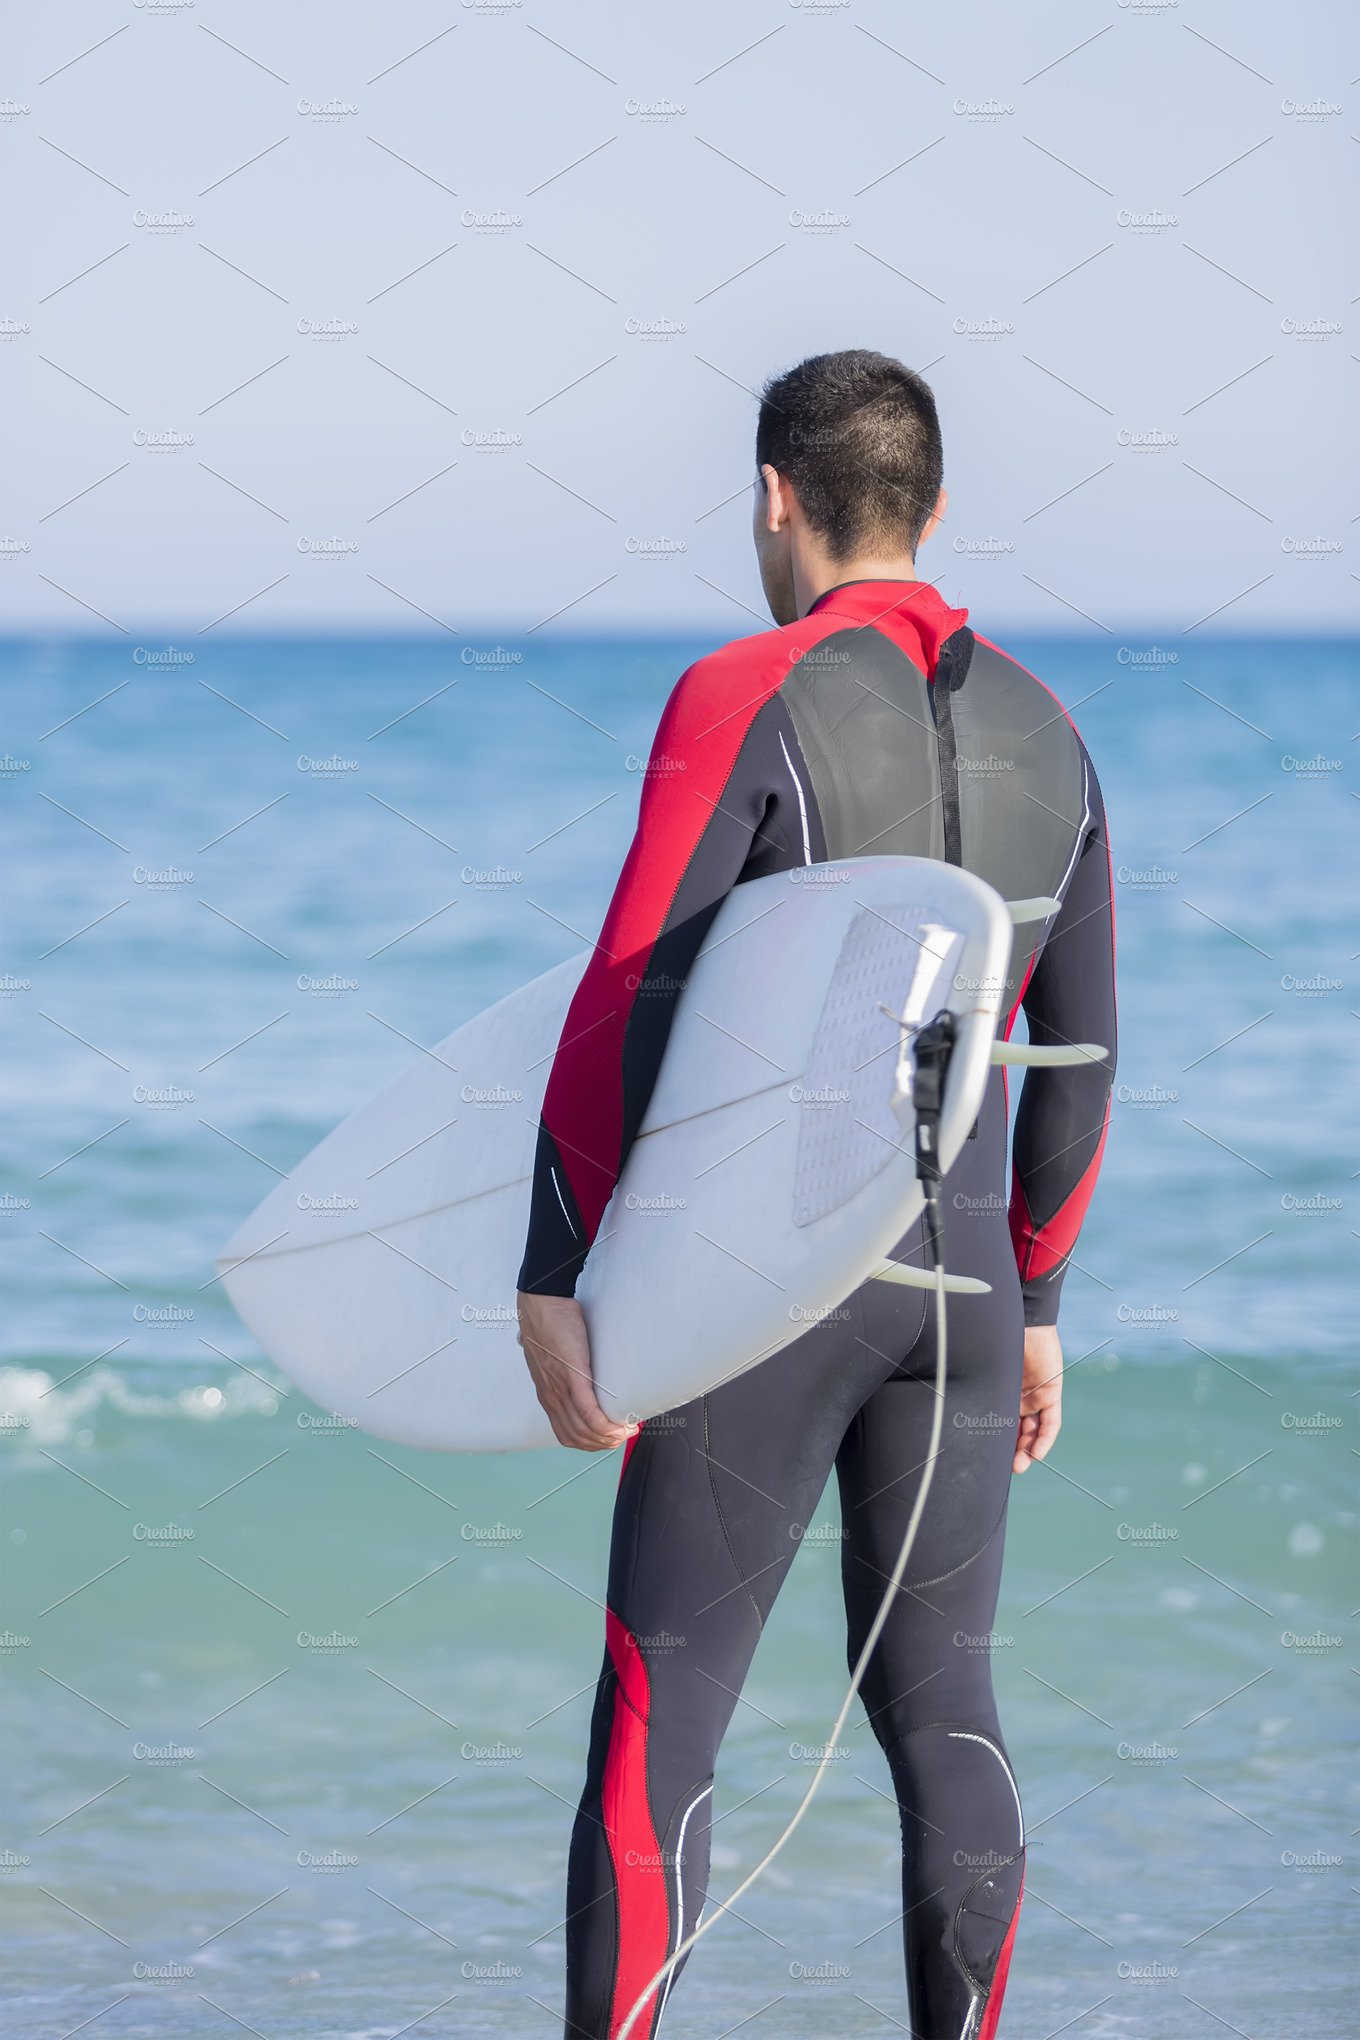 man surfer ready to surf ~ Sports Photos ~ Creative Market 20ad091b3